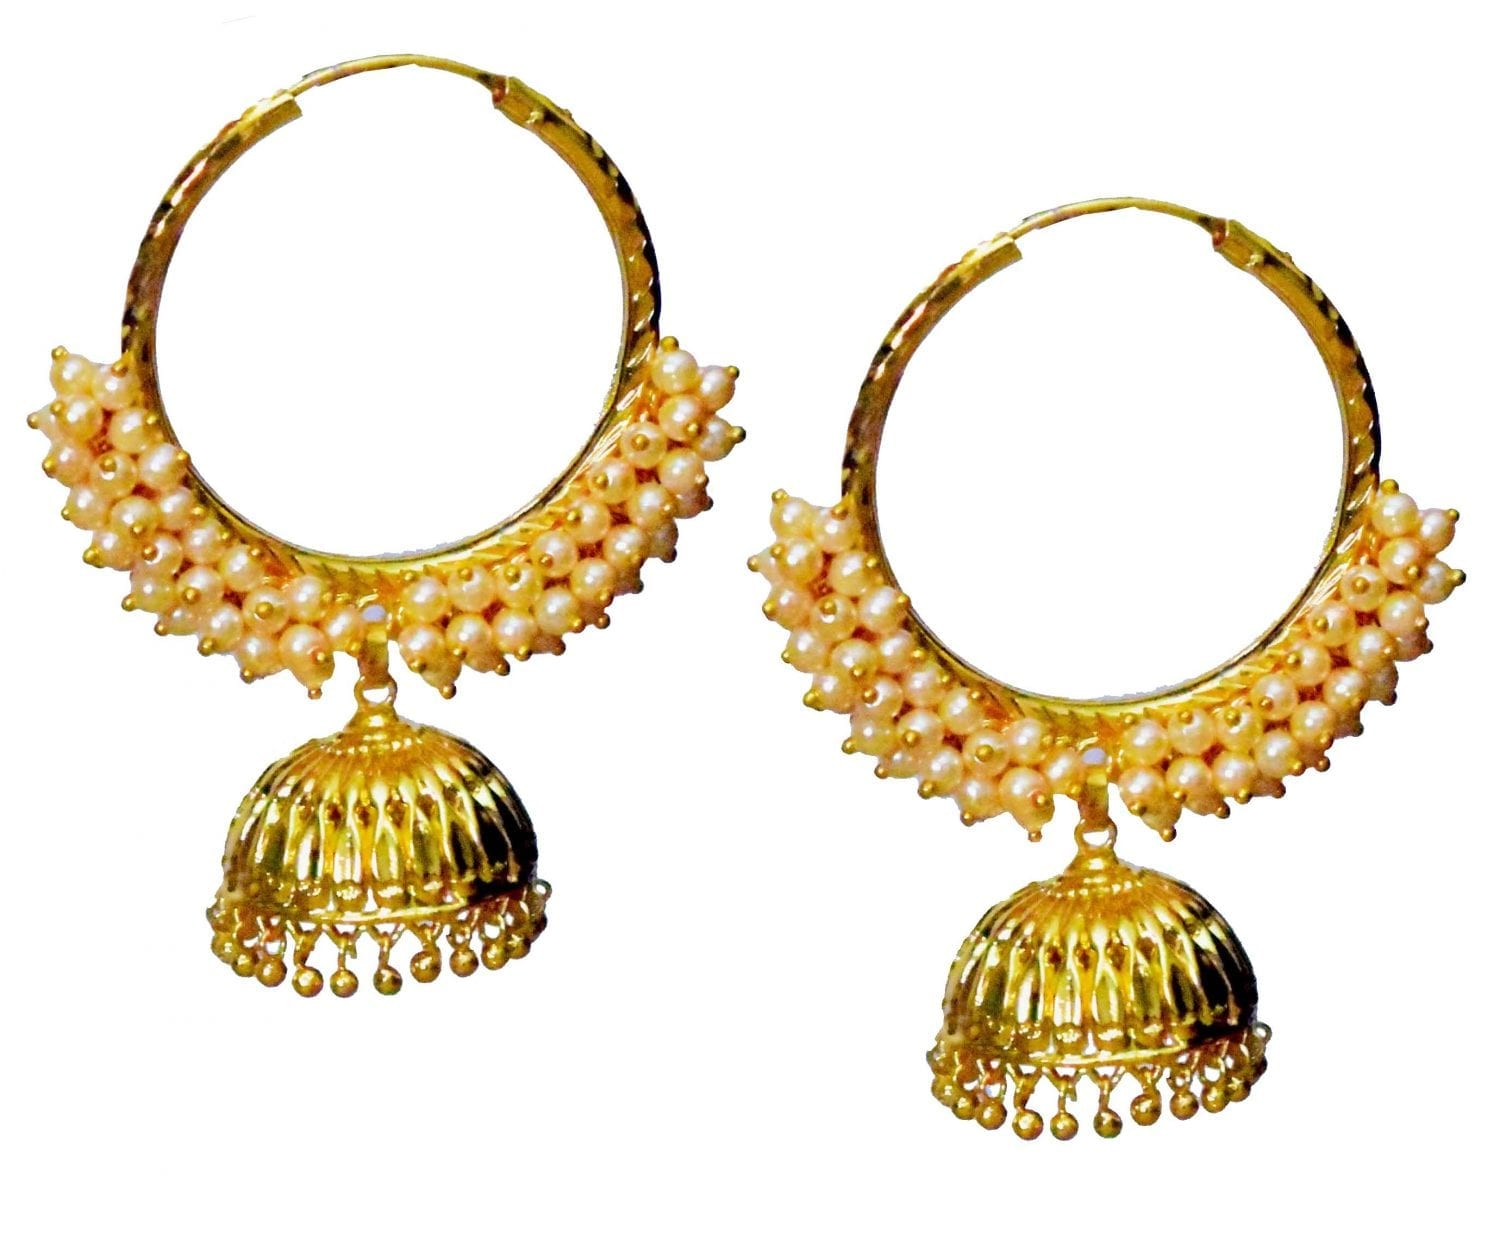 Pearl Beads Gold Polished Traditional Punjabi Earrings Bali set J0461 1